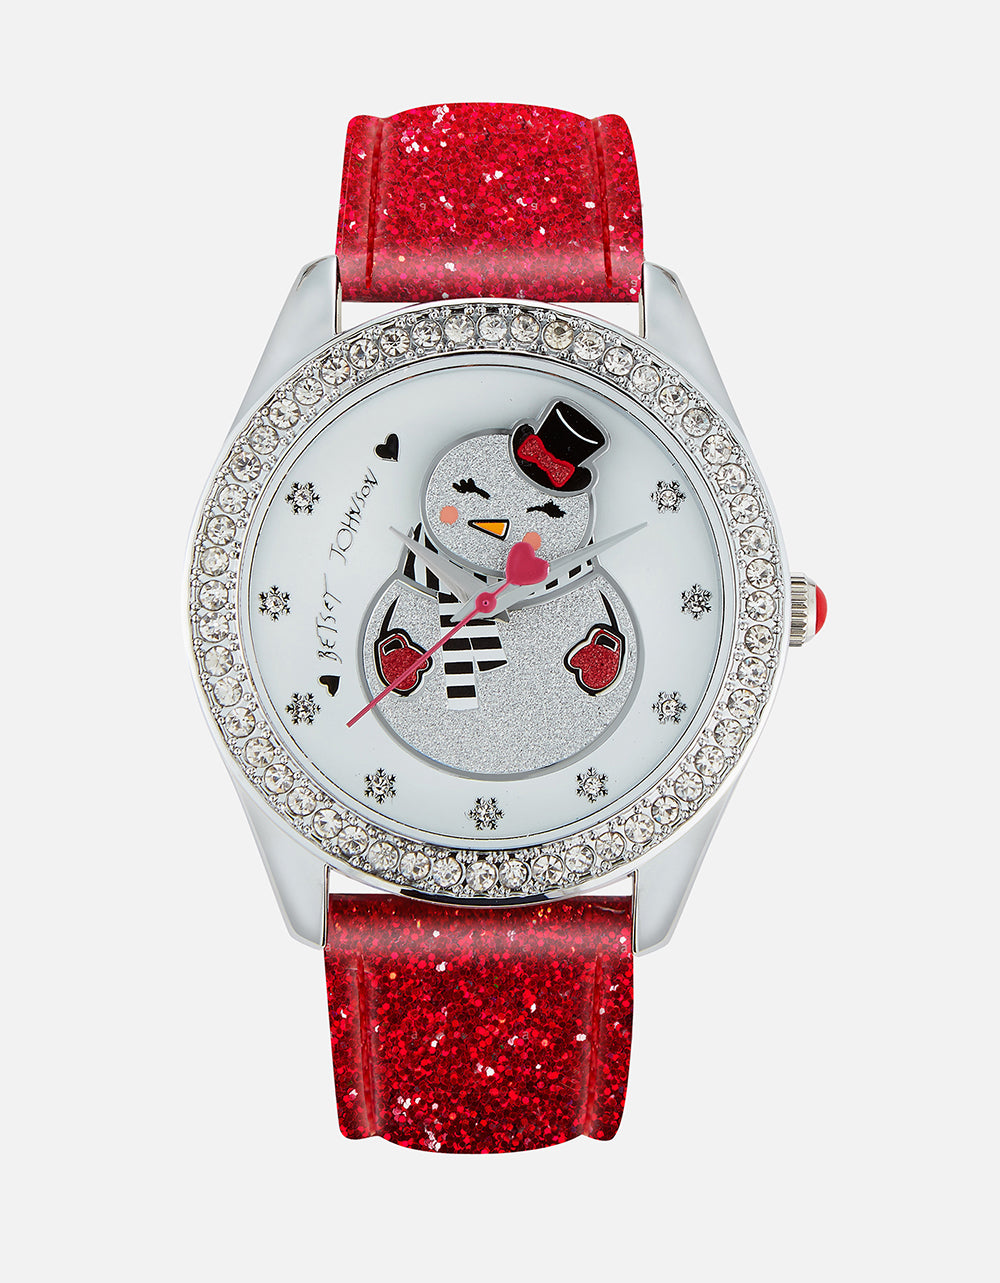 KEEP IT CHILL SNOWGAL WATCH RED - JEWELRY - Betsey Johnson